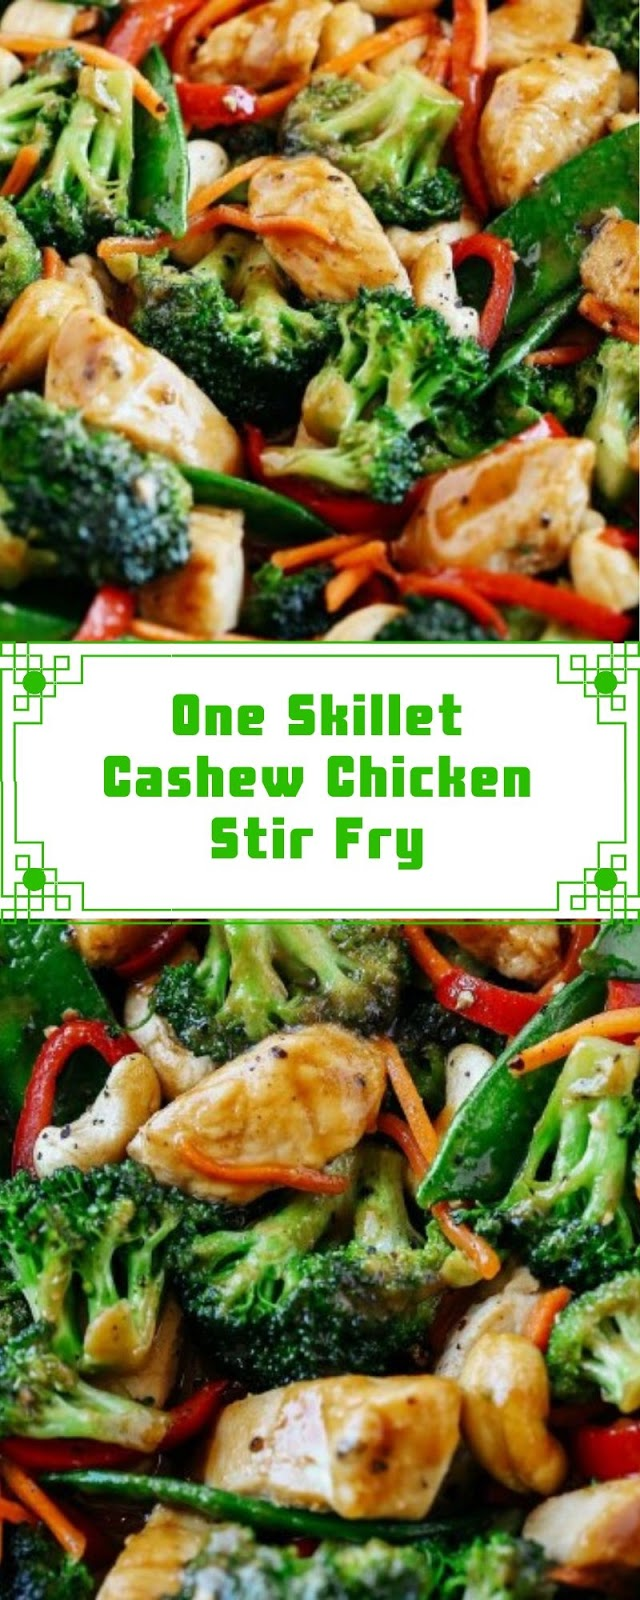 One Skillet Cashew Chicken Stir Fry